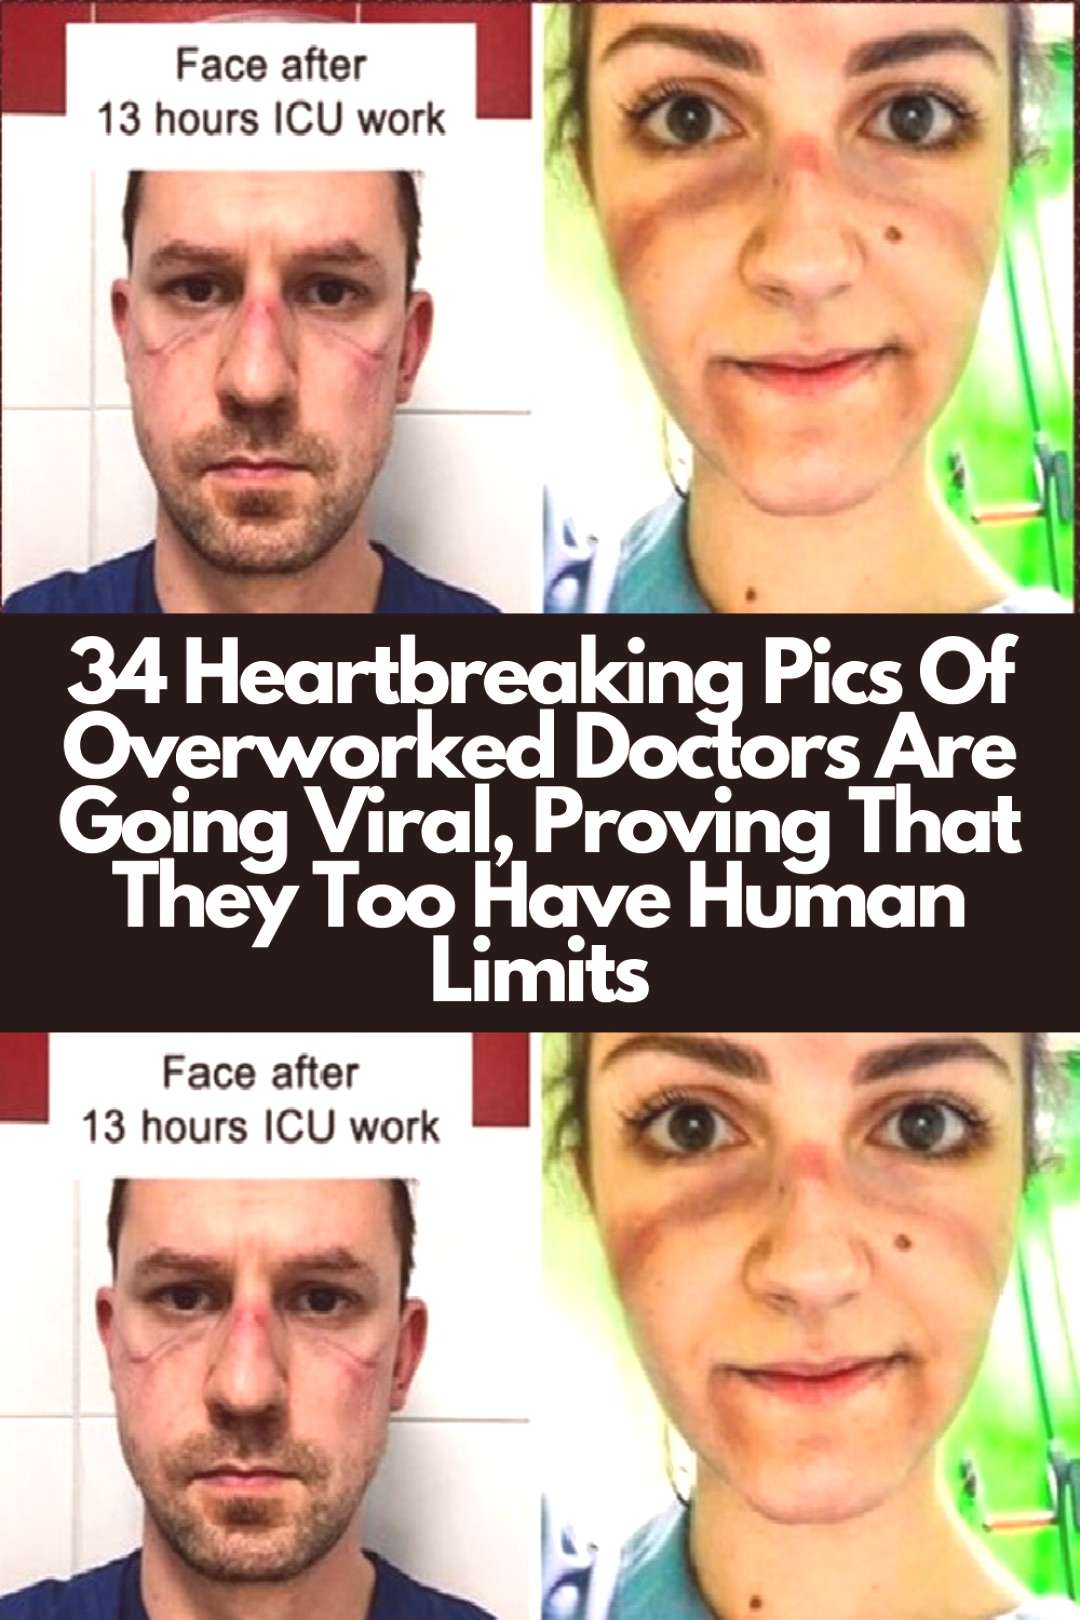 34 Heartbreaking Pics Of Overworked Doctors Are Going Viral, Proving That They Too Have Human Limit